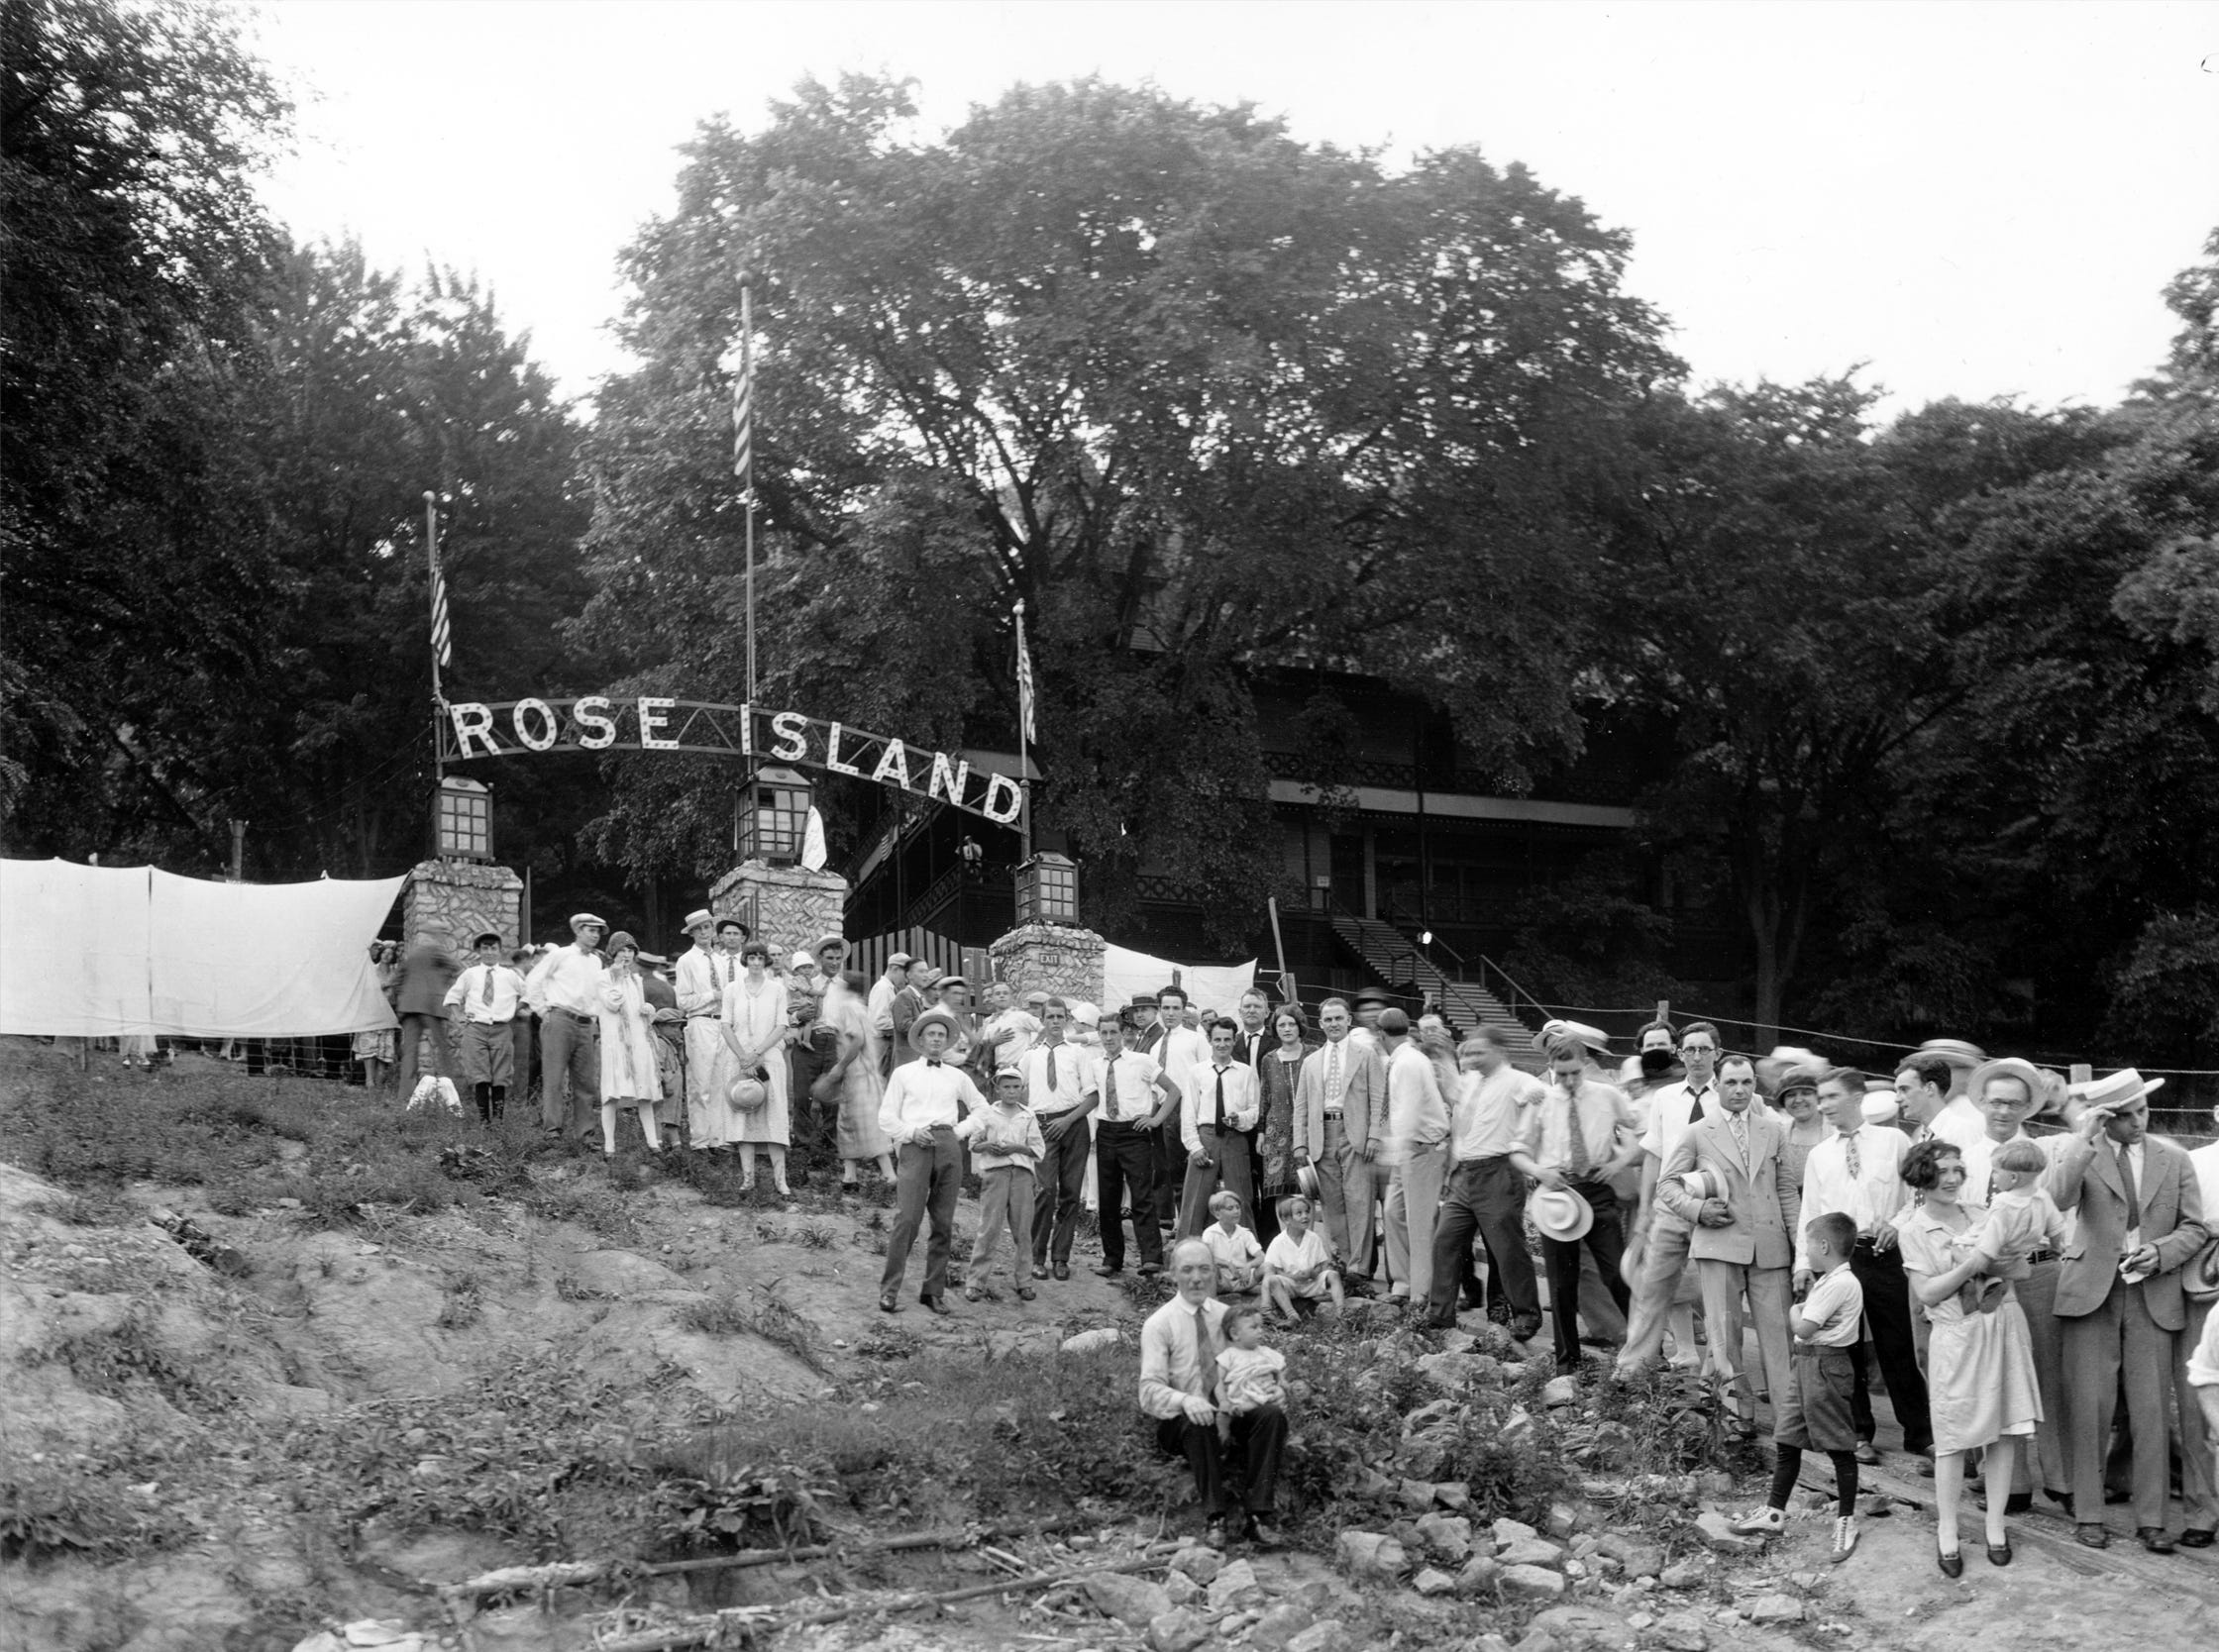 Visitors arrive at Rose Island for a July 4th celebration in 1926.